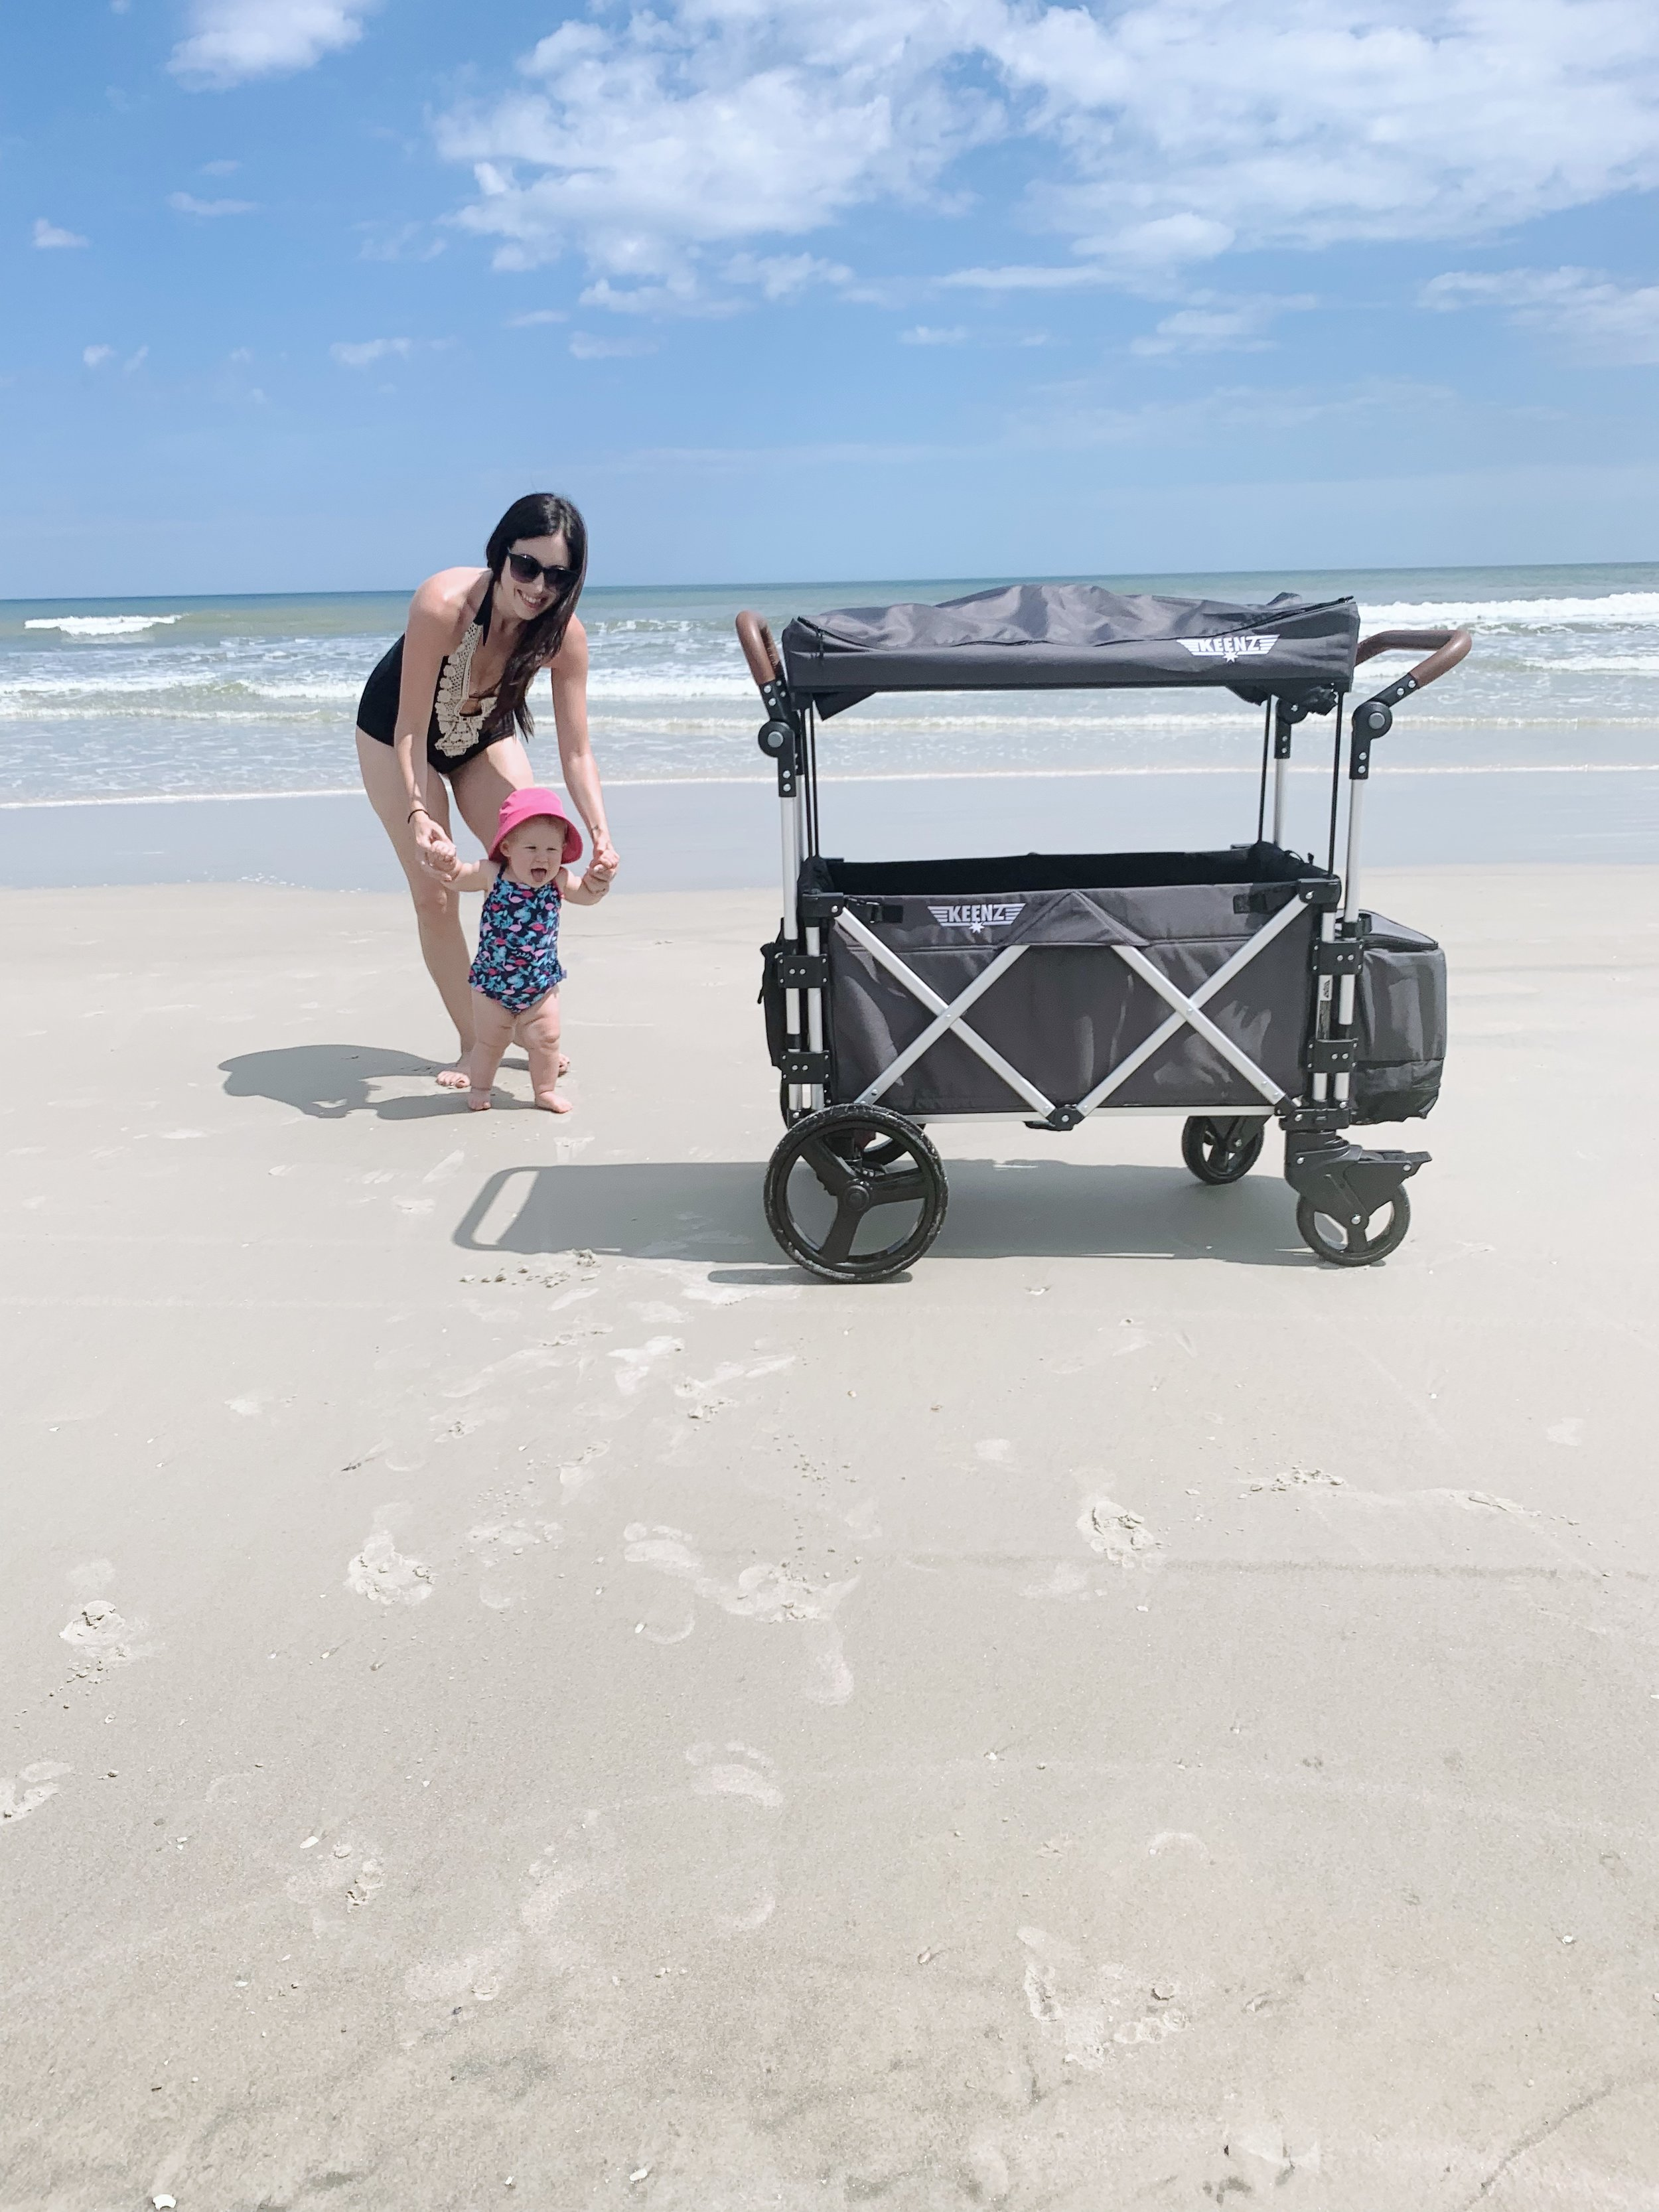 We are already in love with our Keenz wagon! It's perfect for beach trips!